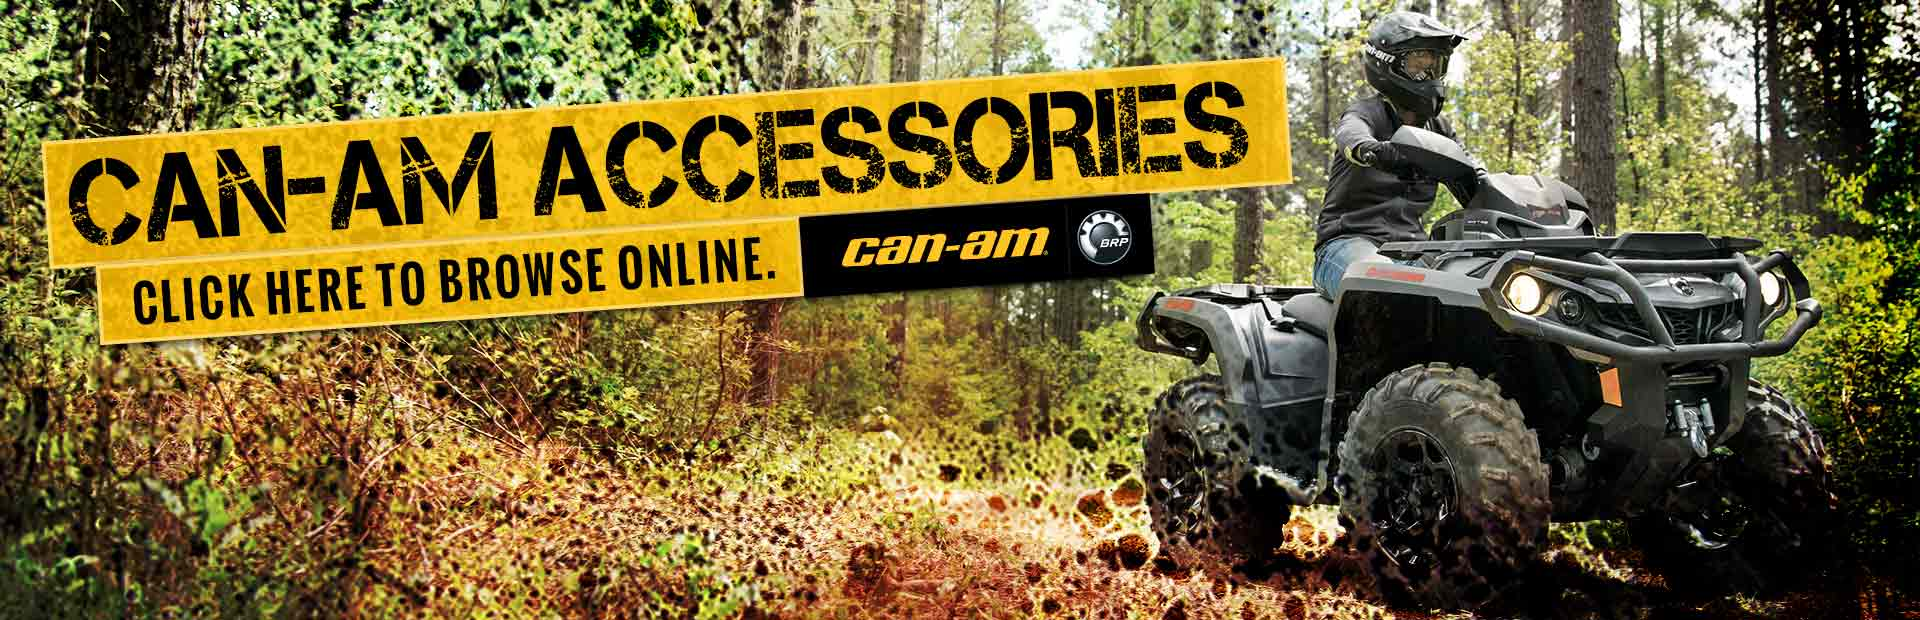 Can-Am Accessories: Click here to browse online.